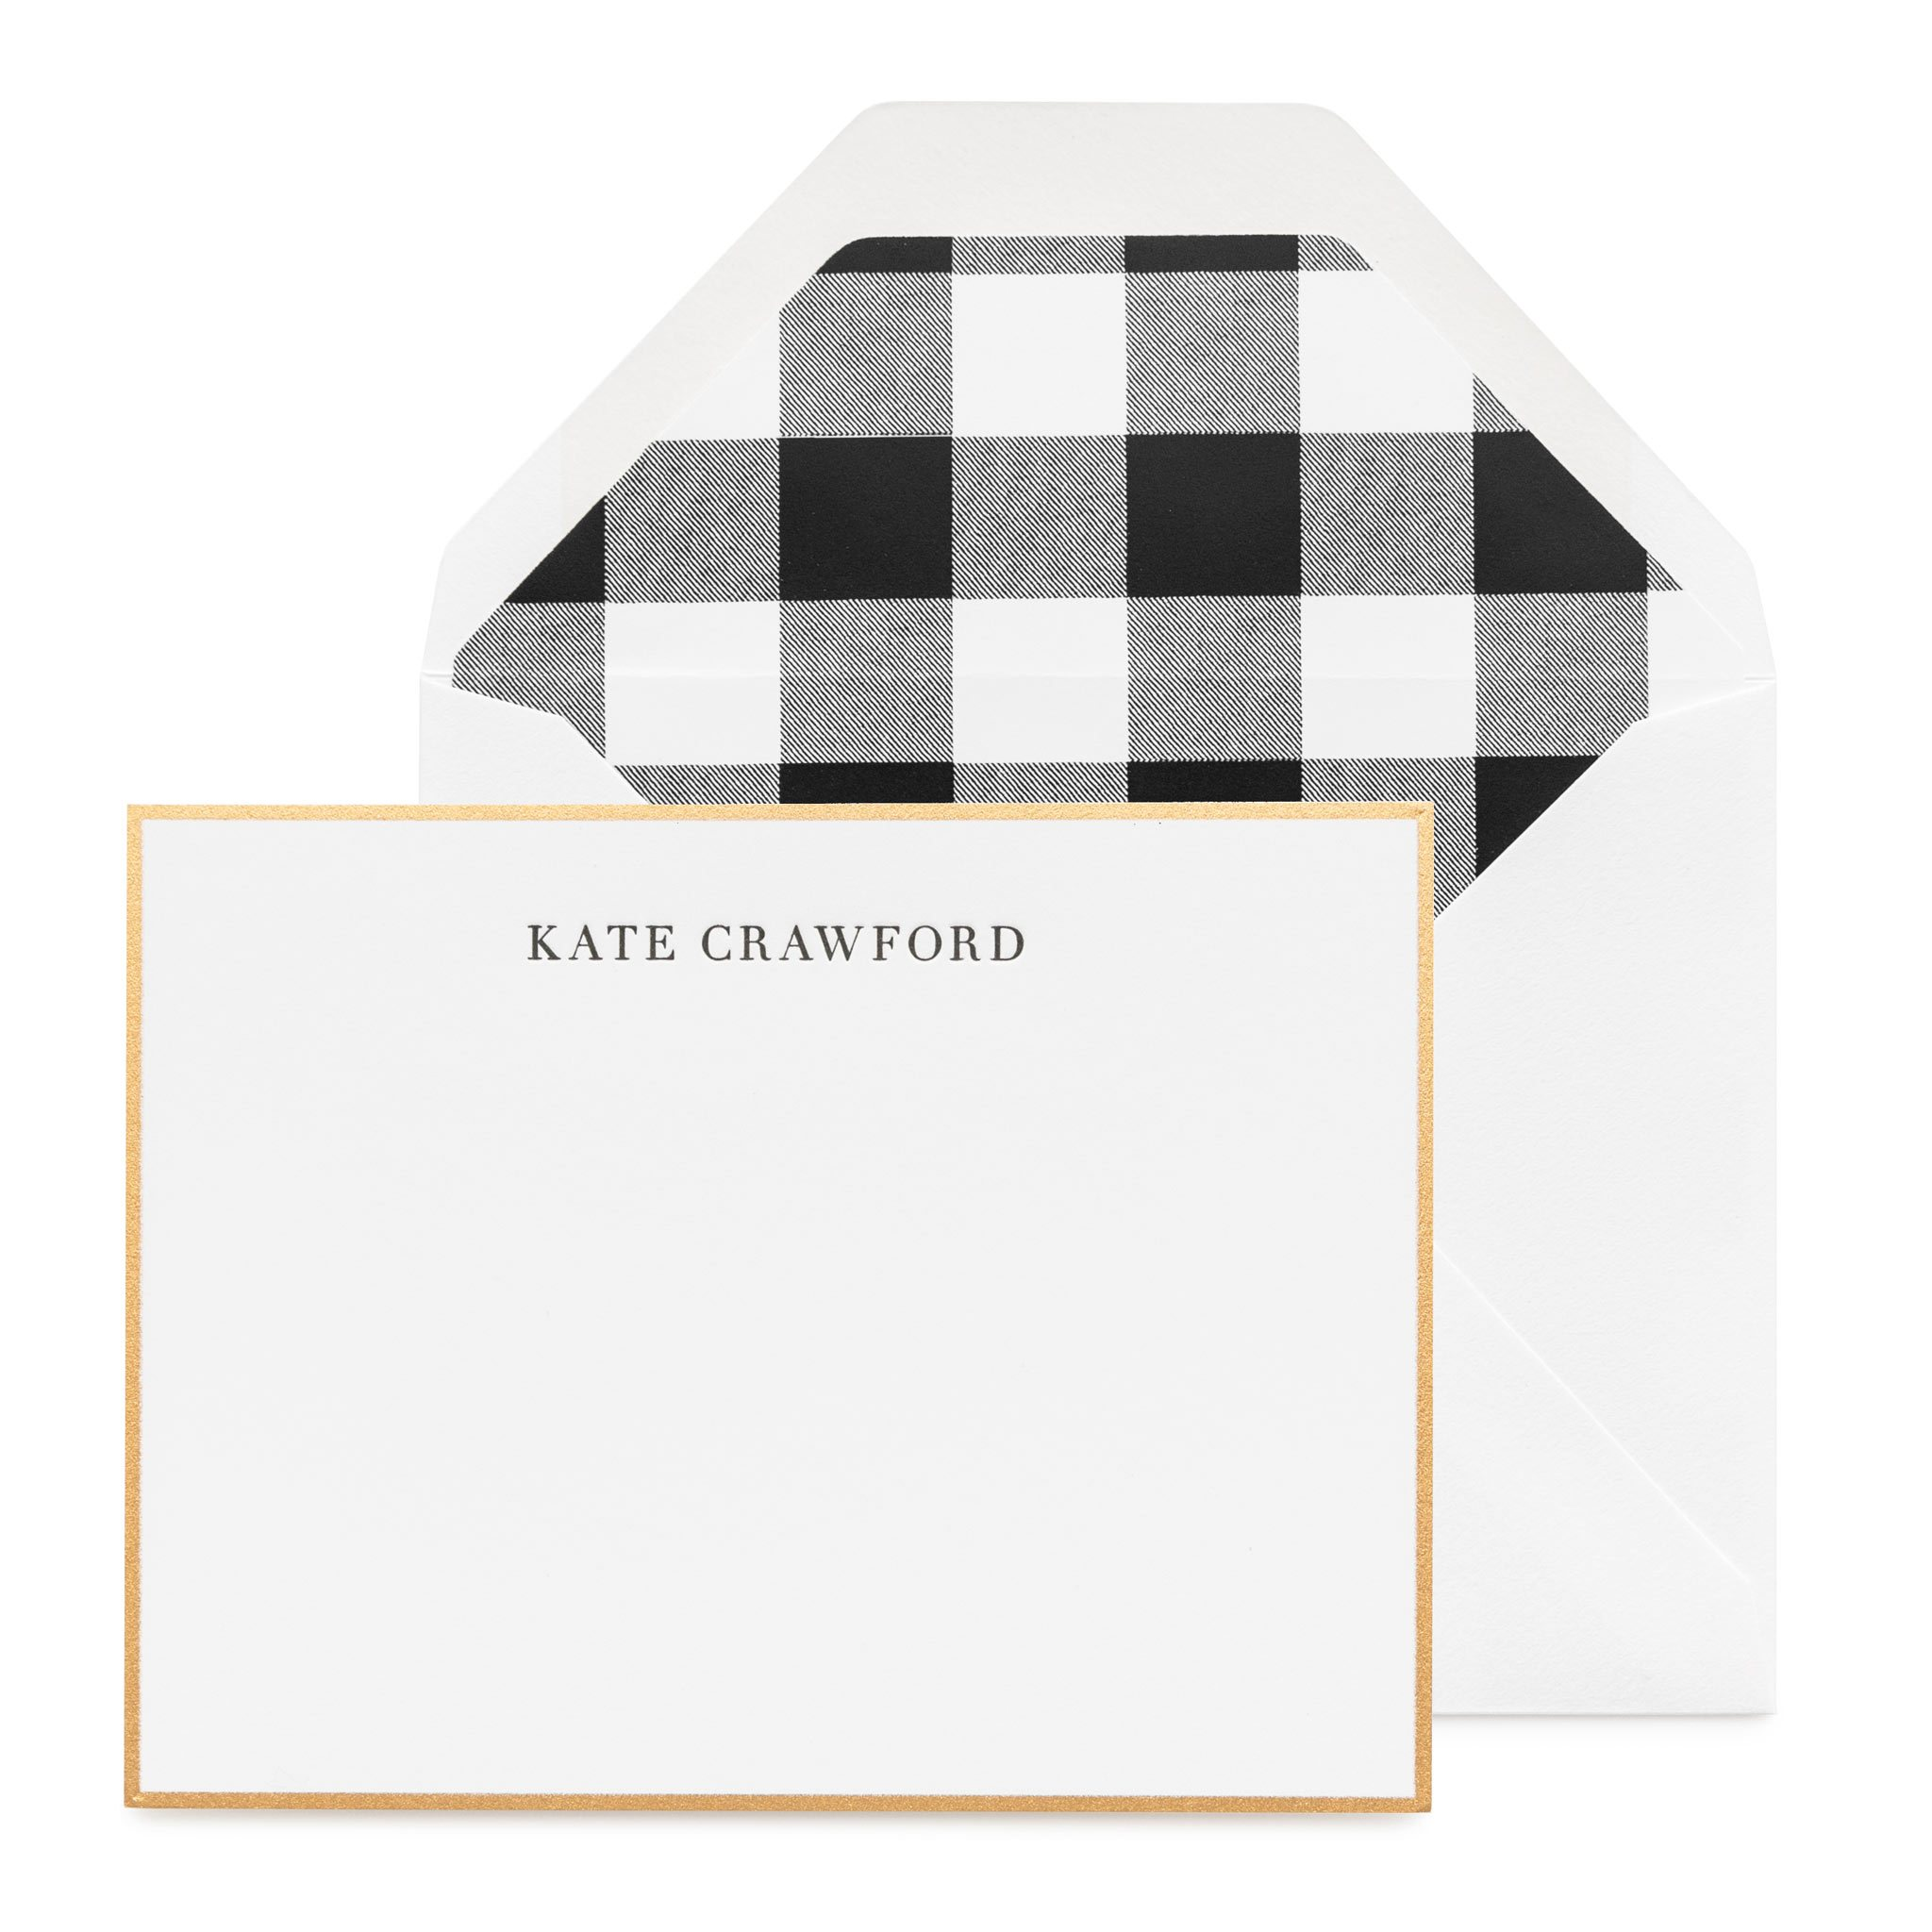 OPS09-Kate-Crawford_buffalo-check-liner-web_1200x1200@2x